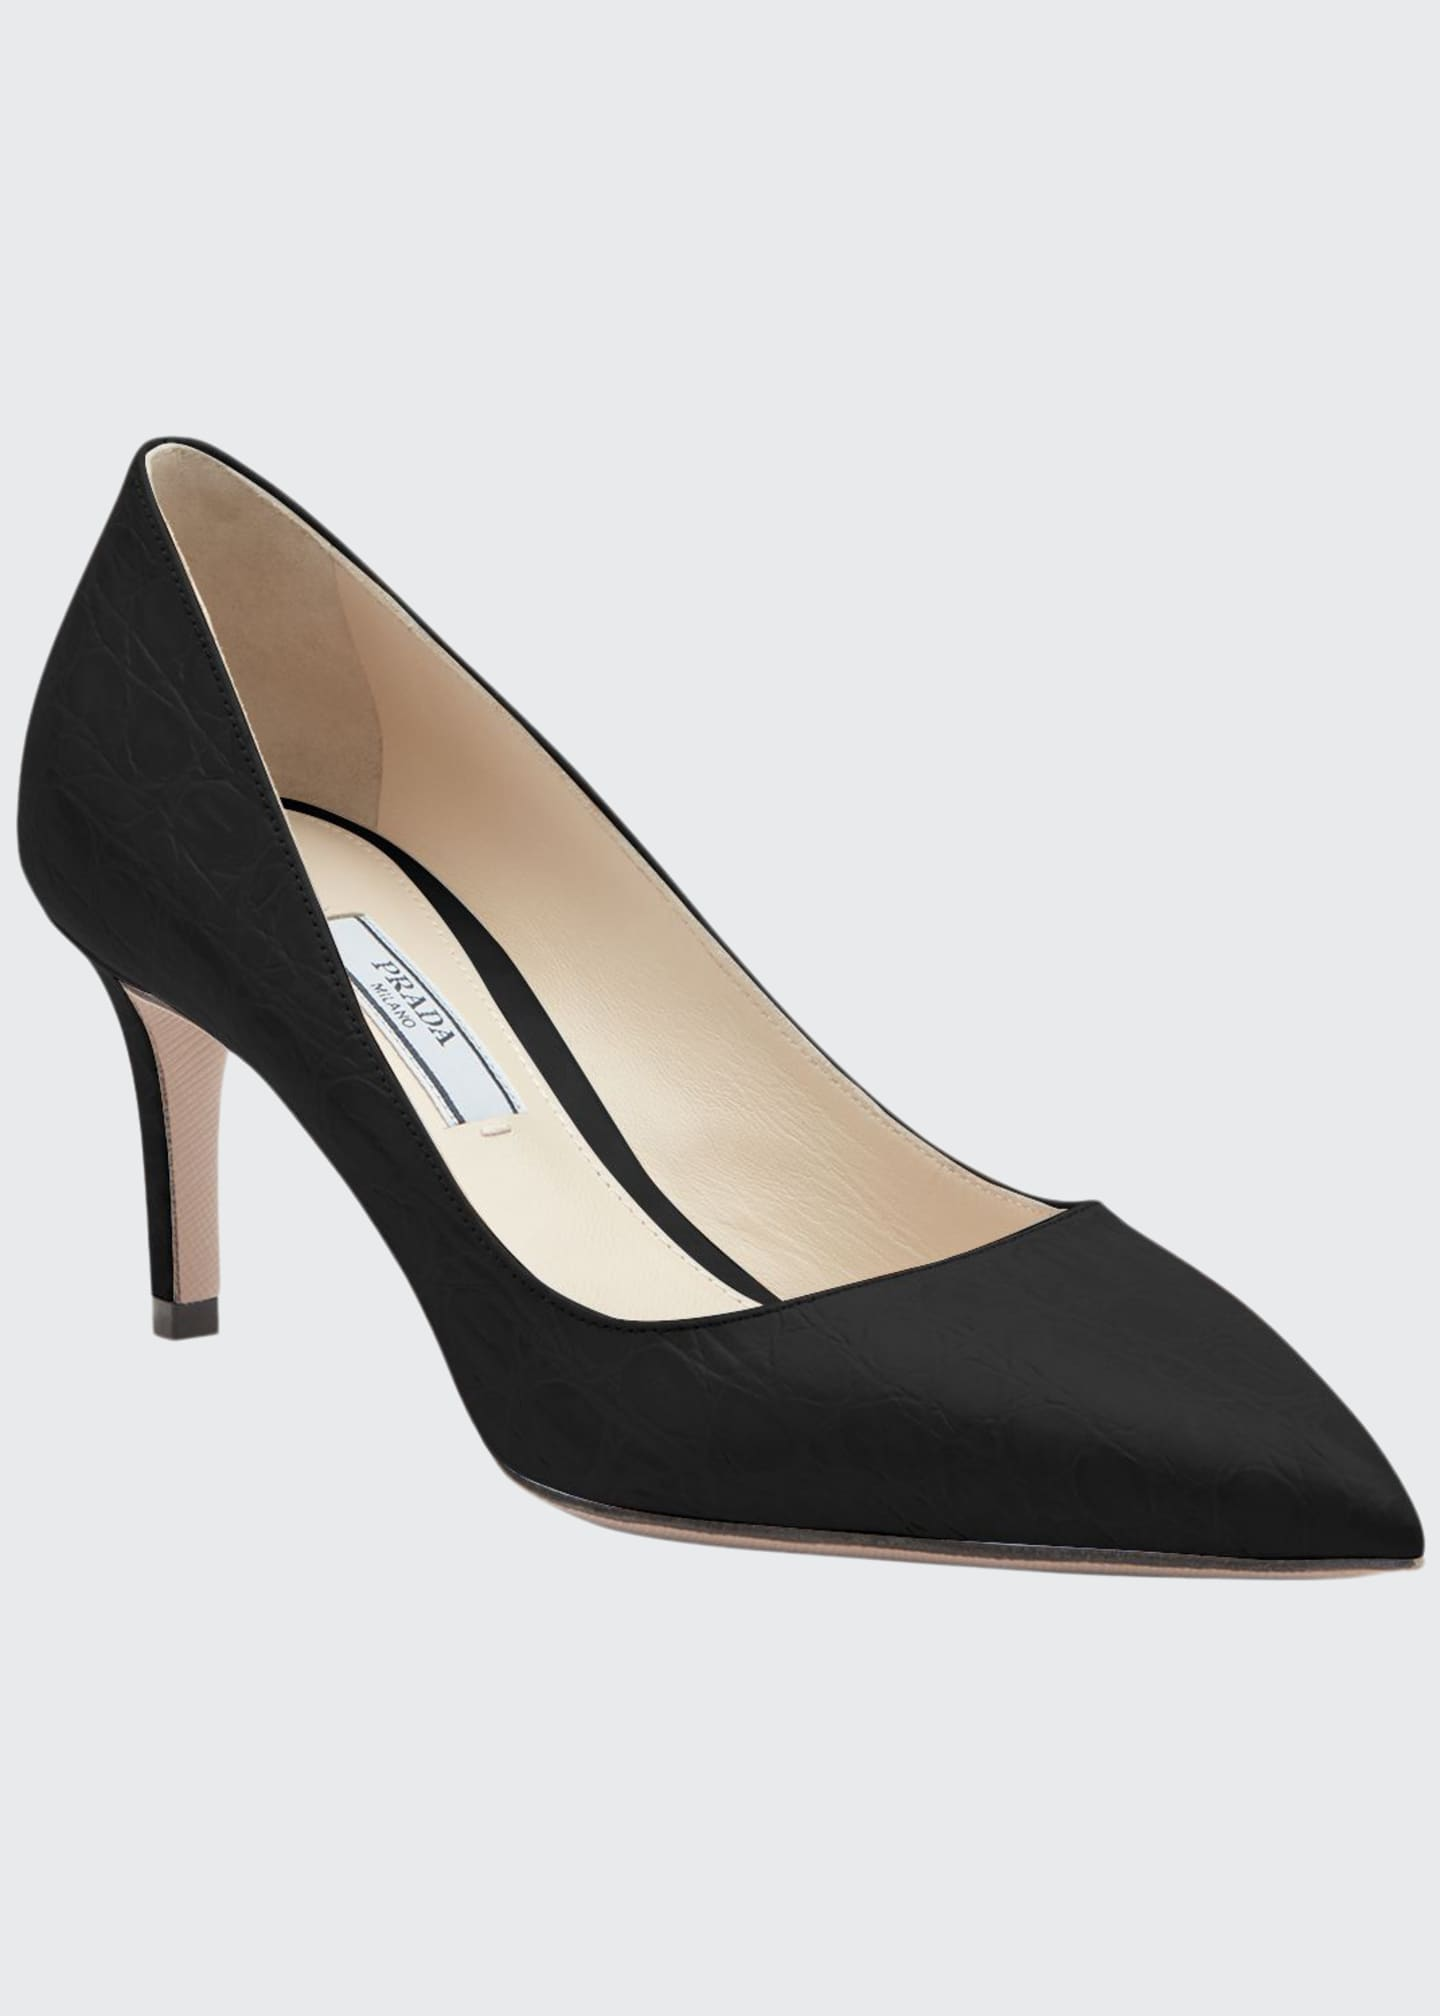 Prada Croco Point-Toe 65mm Pumps